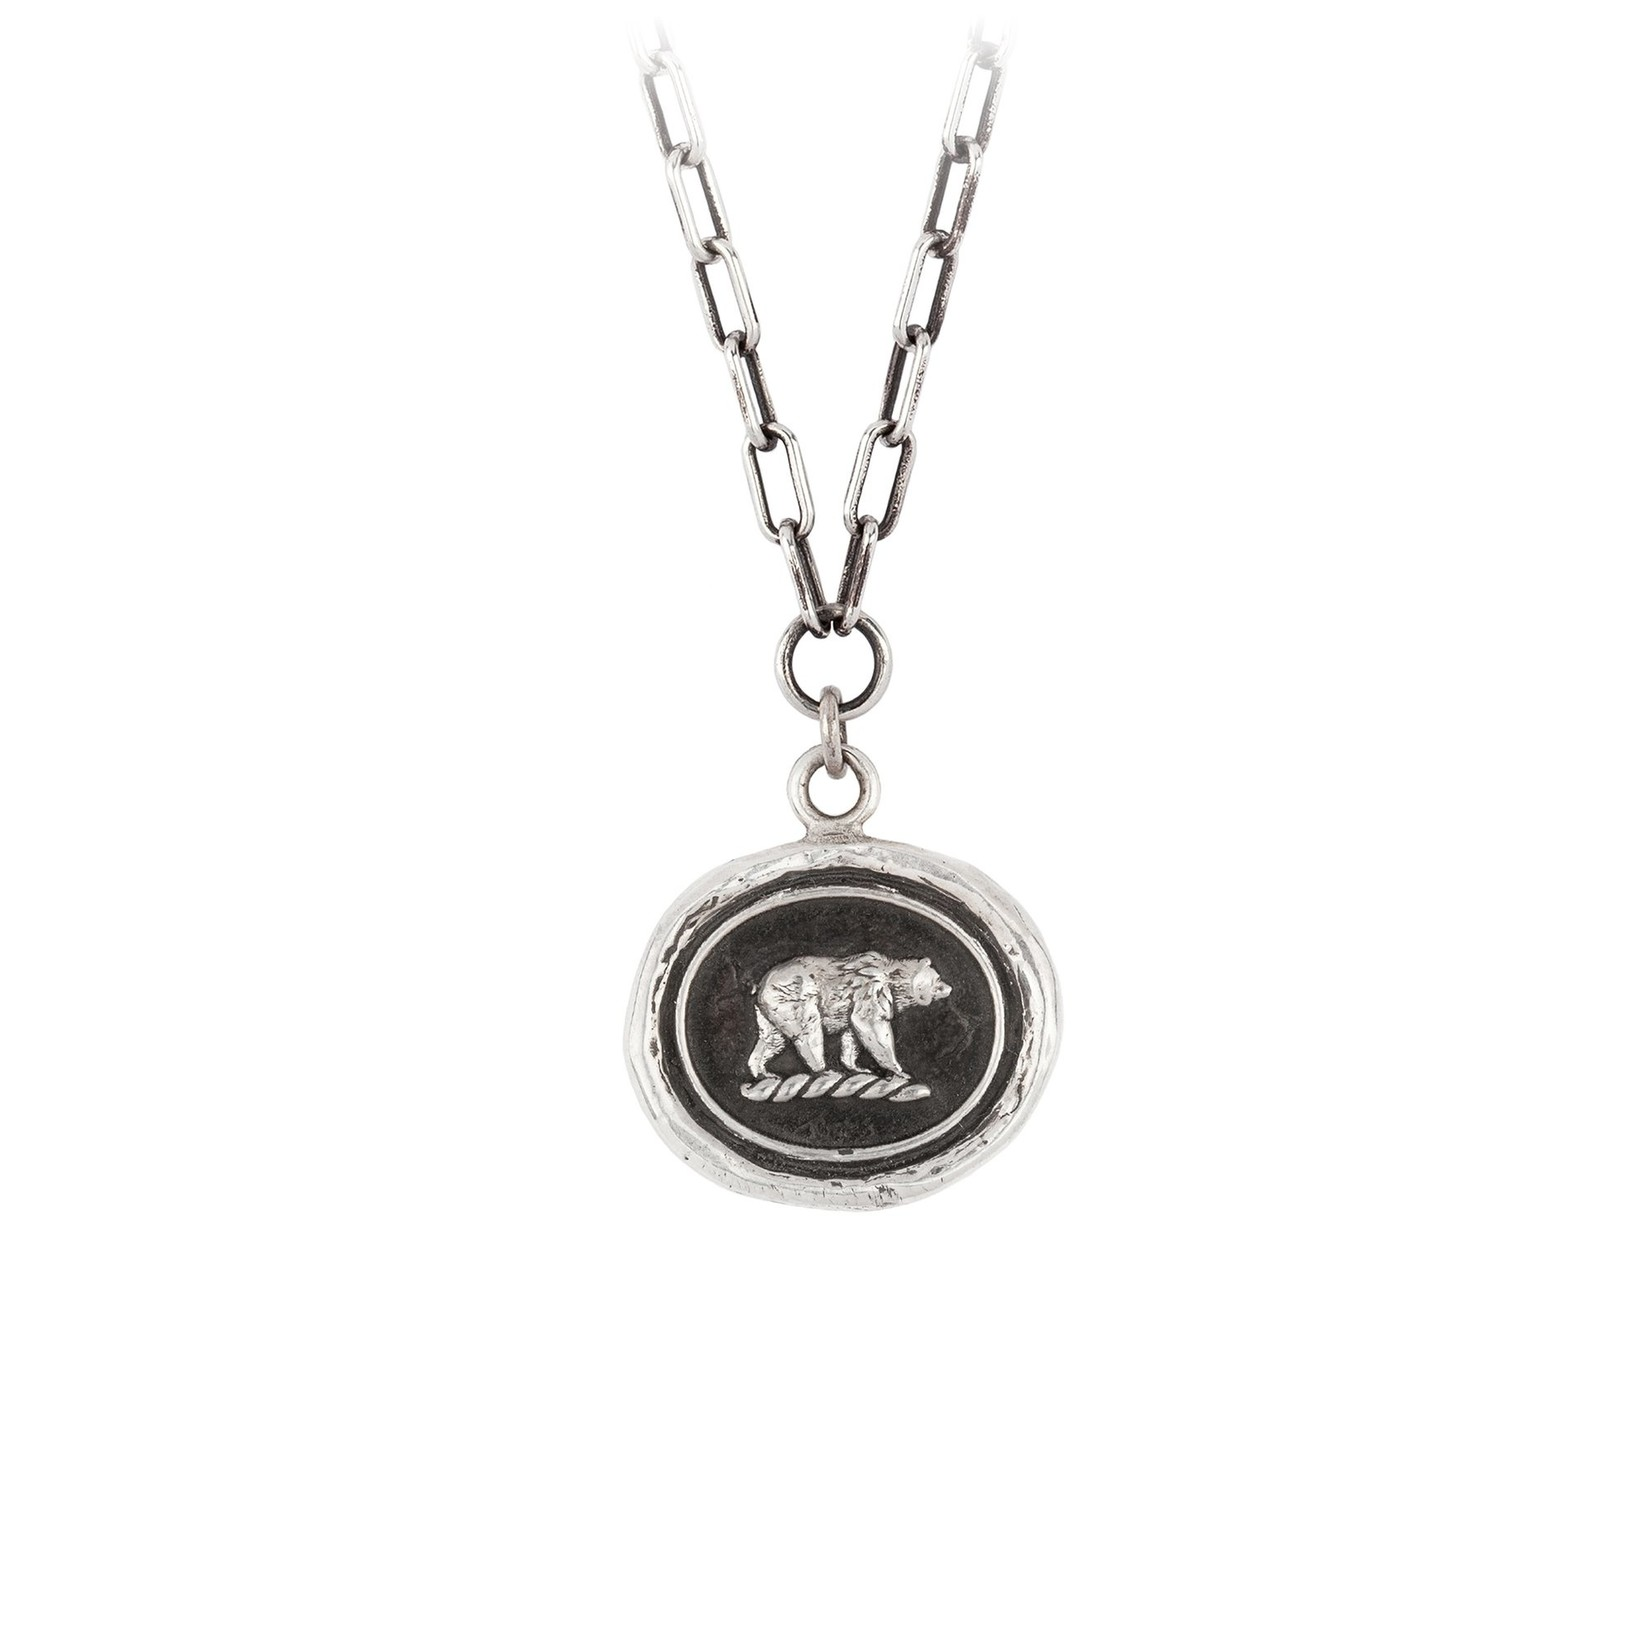 Pyrrha Mother Bear Small Paperclip Chain Necklace